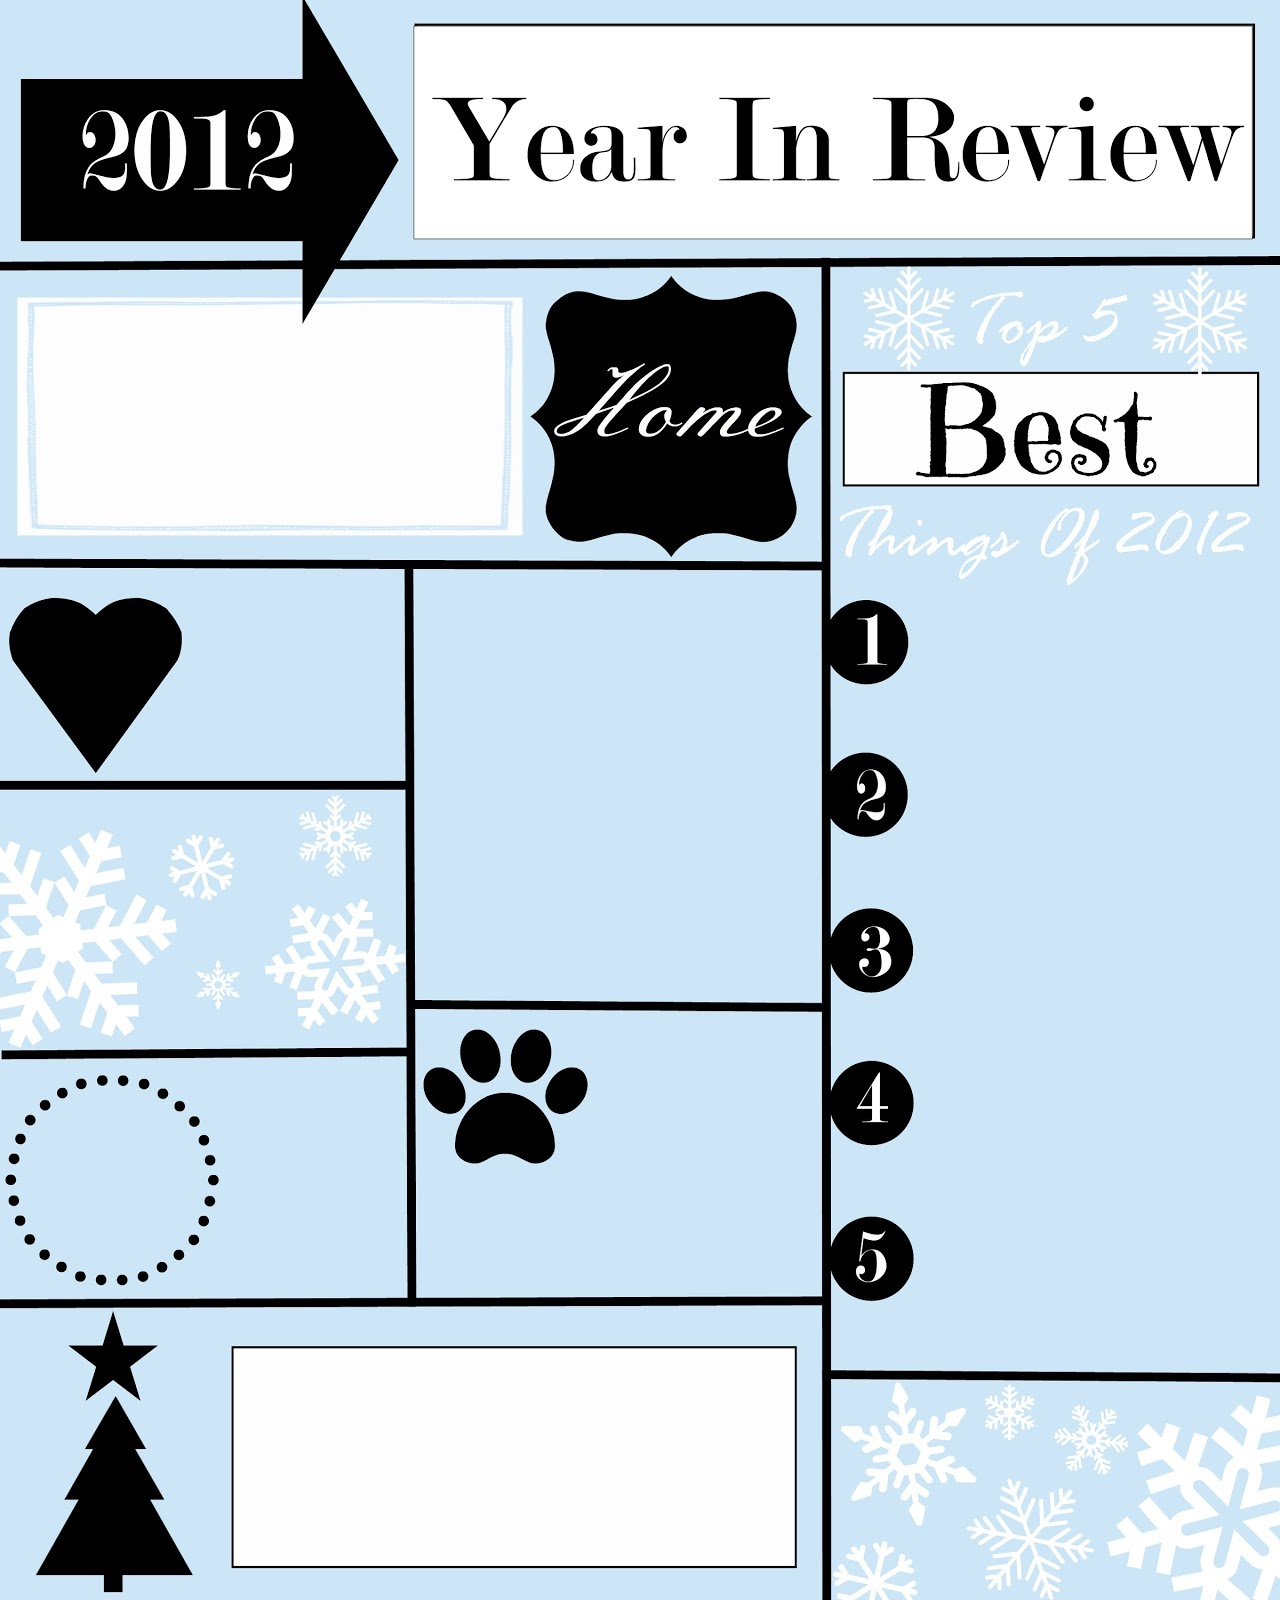 a year in review christmas letter and template stonegable a year in review christmas letter and template